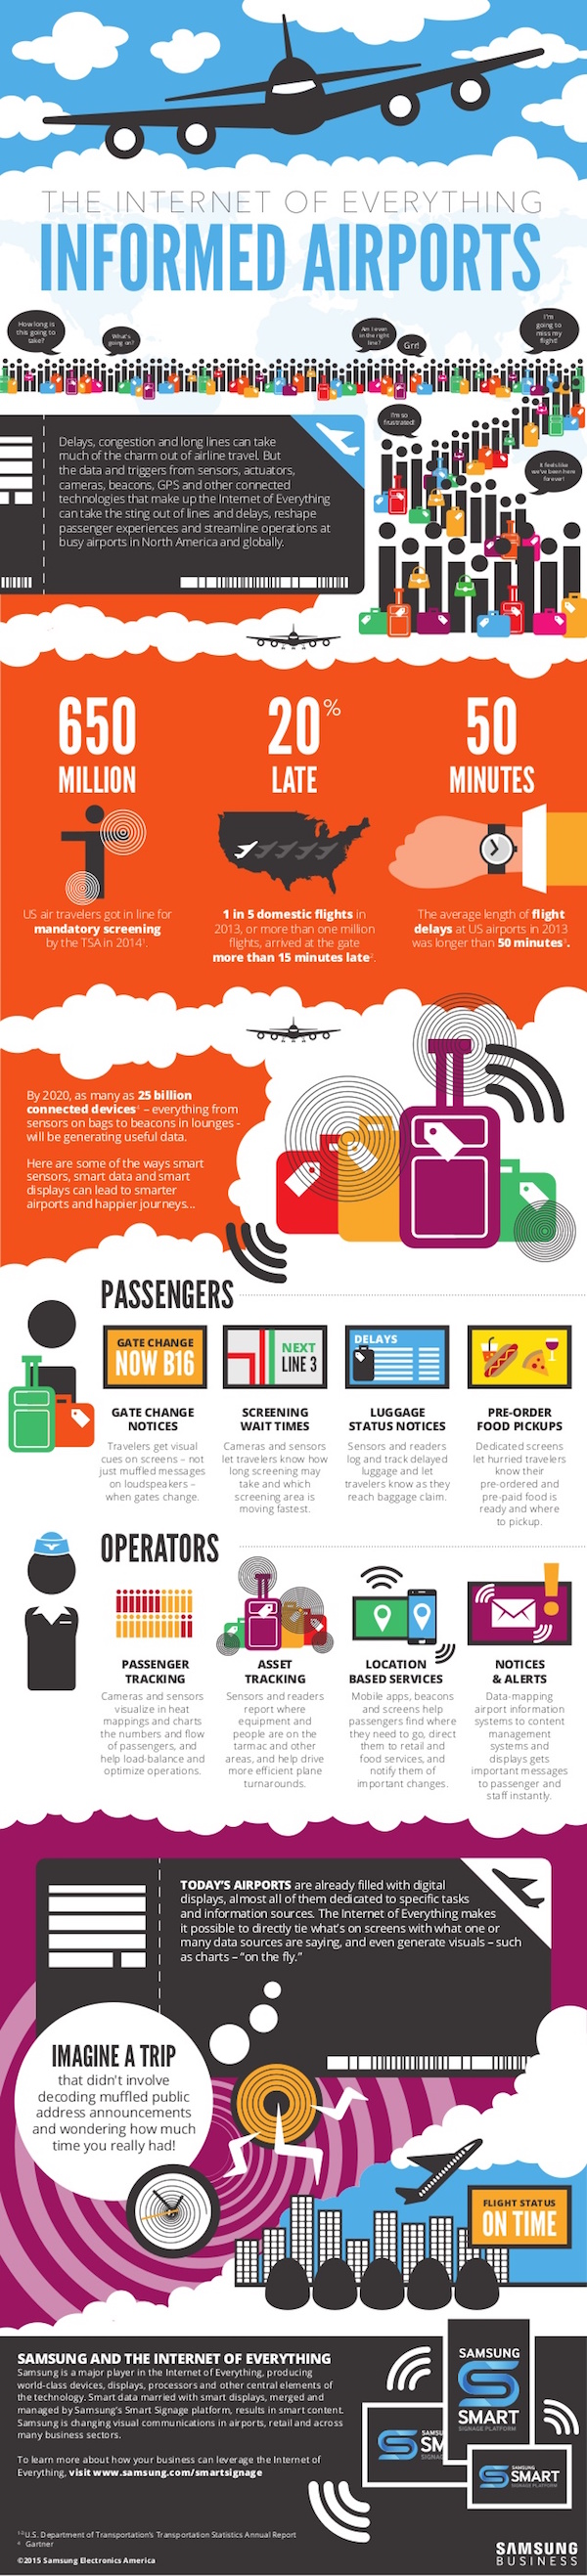 the-internet-of-everything-informed-airports-1-638